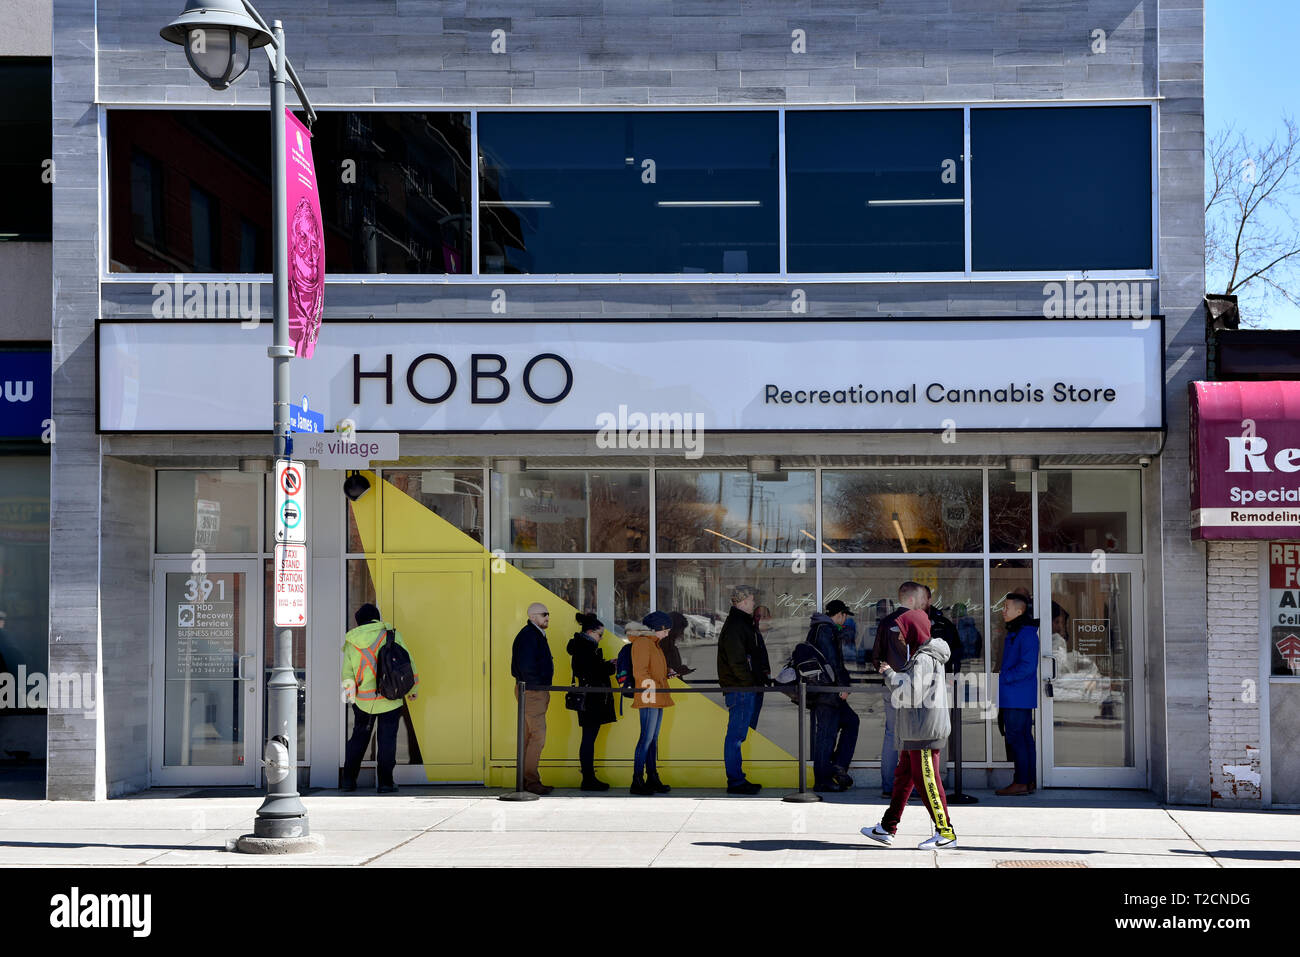 Ottawa, Canada - April 1, 2019: Customers wait in line to enter the Hobo Recreational Cannabis store on Bank St the first day for legal retail store sale of cannabis in Ontario. Retail store sales of cannabis was legalized in Canada Oct 17, 2018 but not until today in Ontario Credit: Paul McKinnon/Alamy Live News - Stock Image